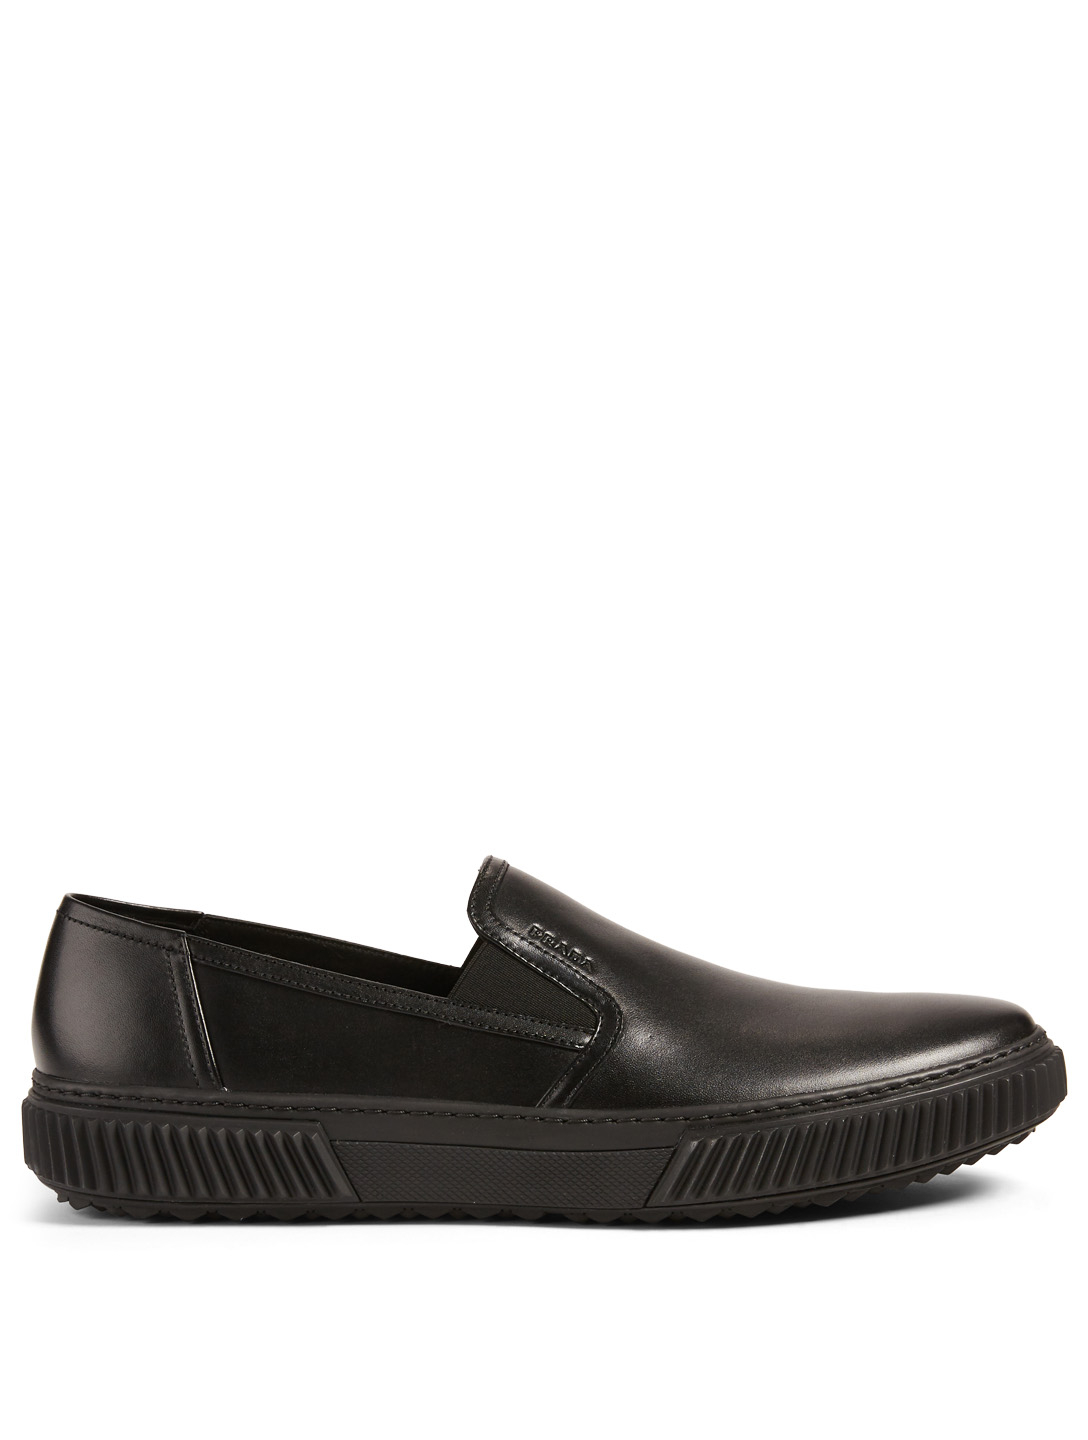 820d9012ab PRADA LINEA ROSSA Stratus Leather Slip-On Sneakers | Holt Renfrew